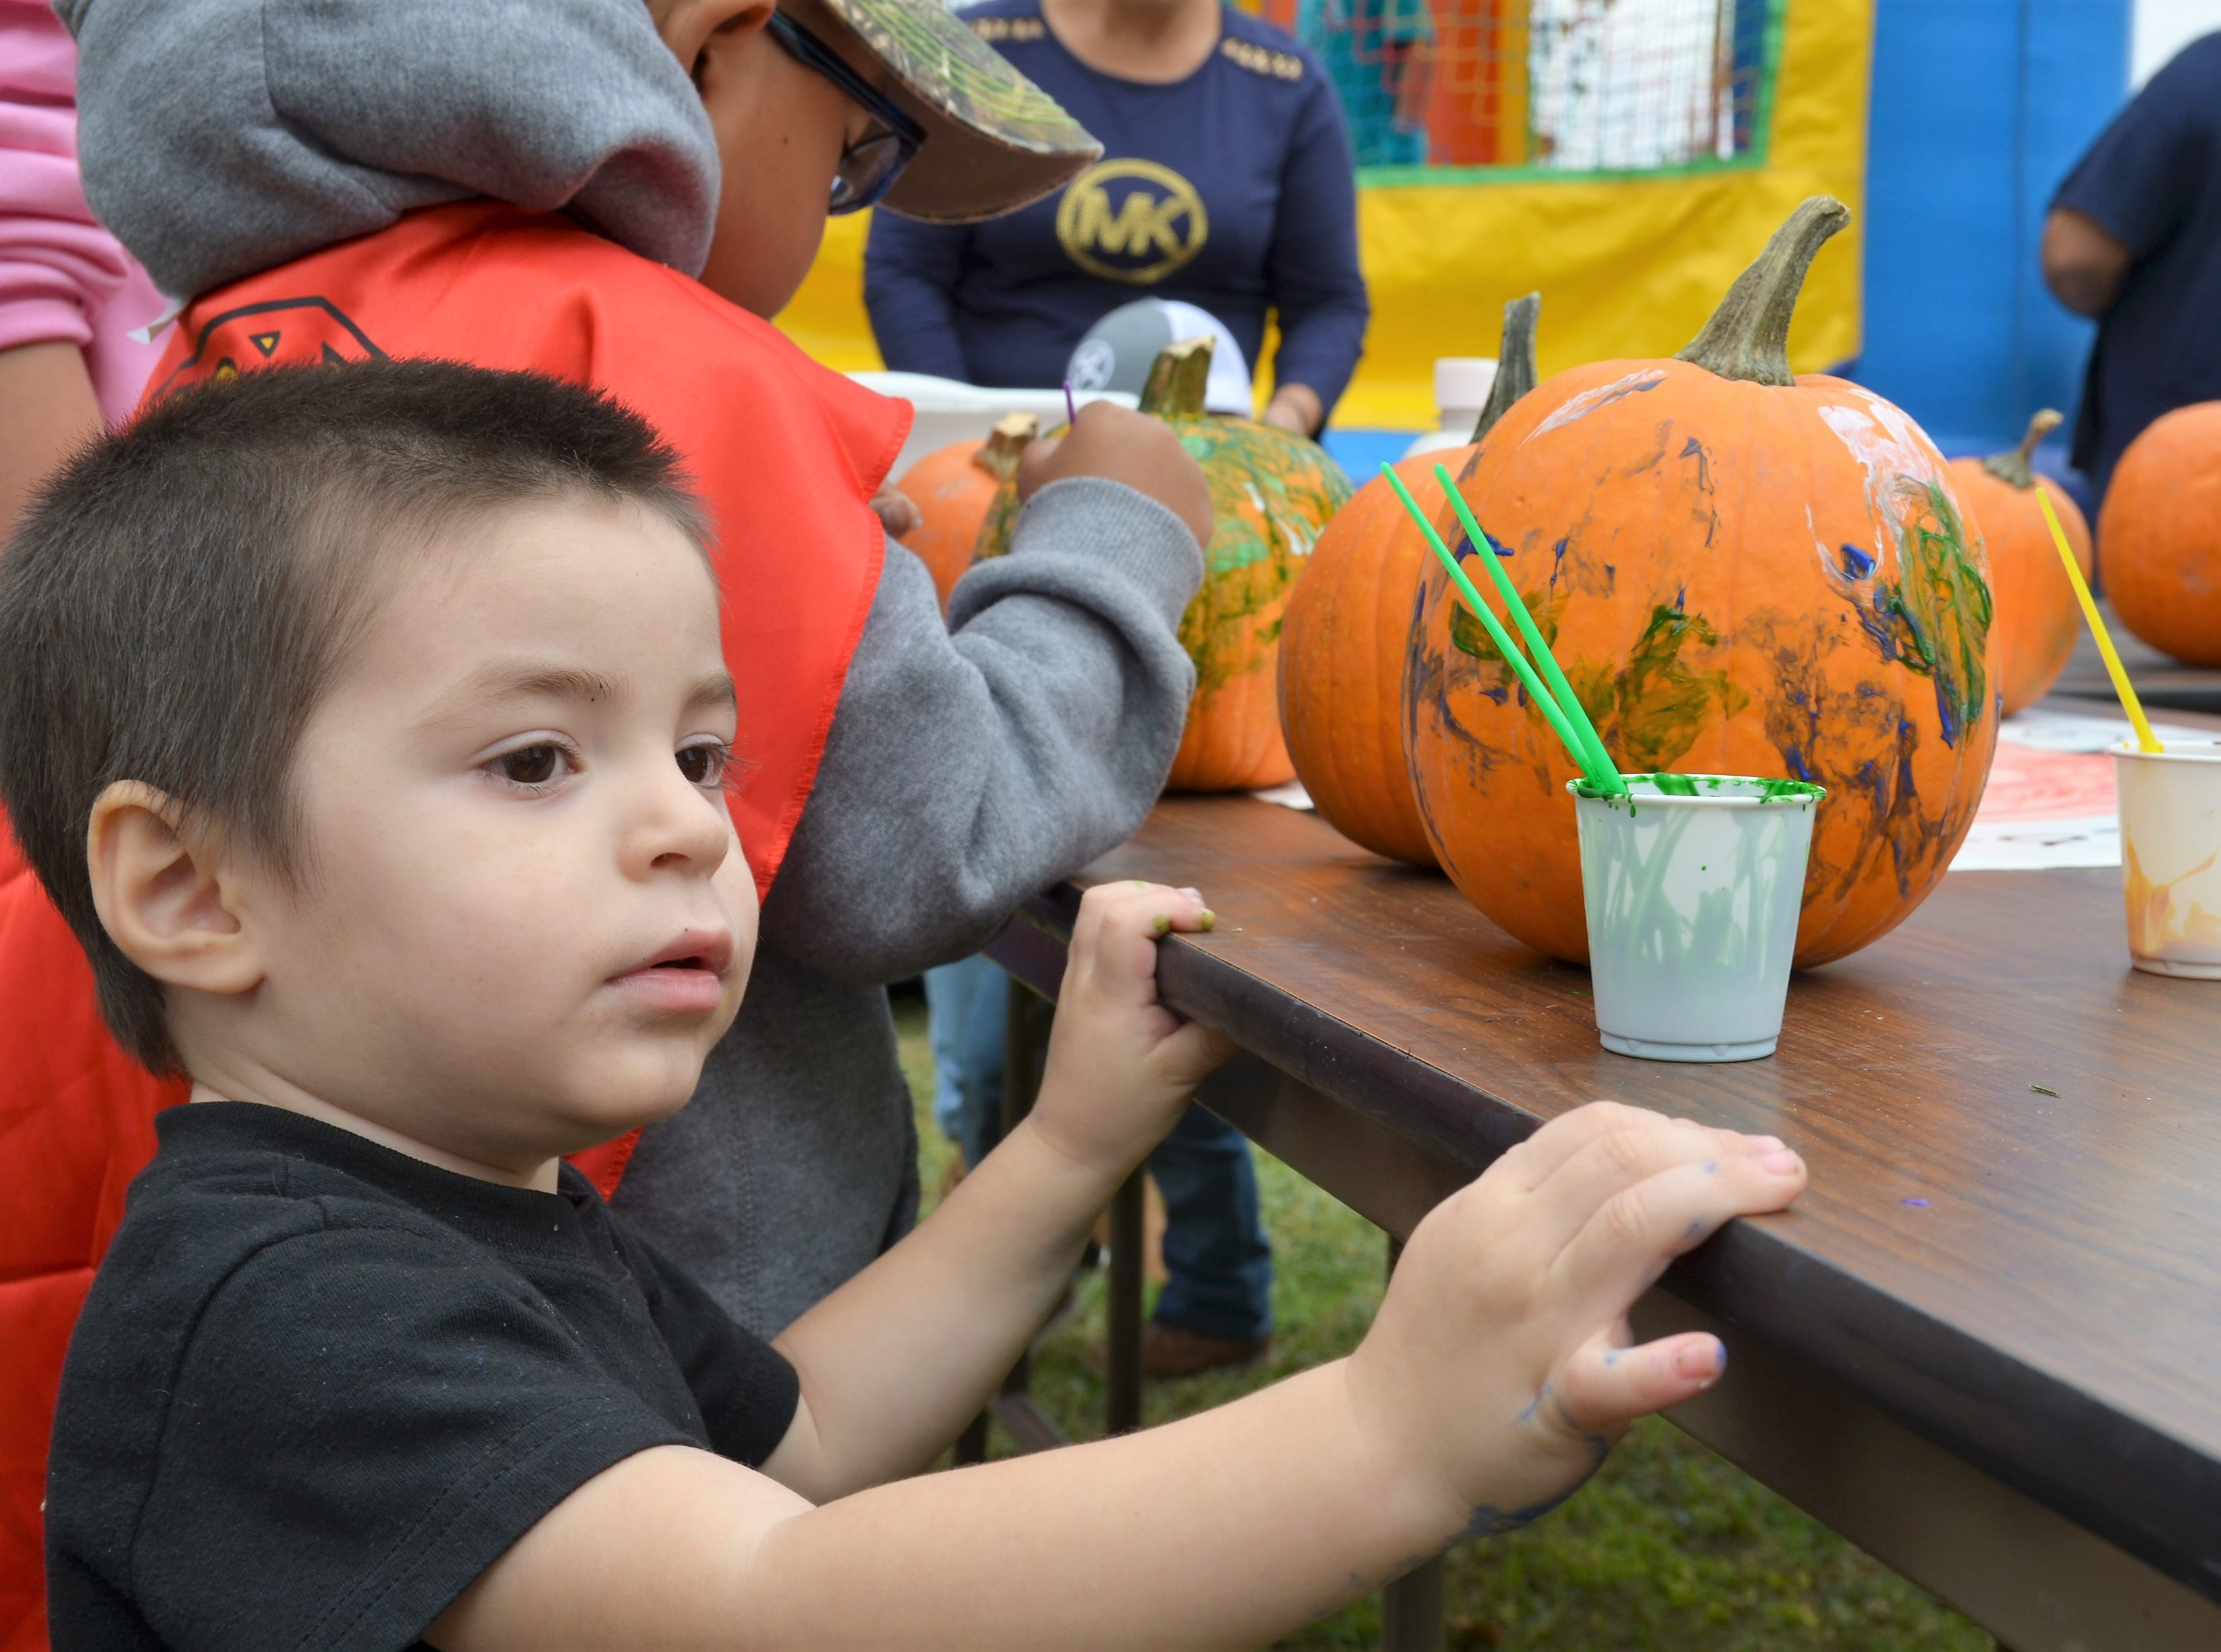 Pedro G. L. Barraza, 2, looked at other colors of paint to decorate his pumpkin. Pumpkin decorating was one of my activities during the Klobase Festival at Court House Park on Sunday.